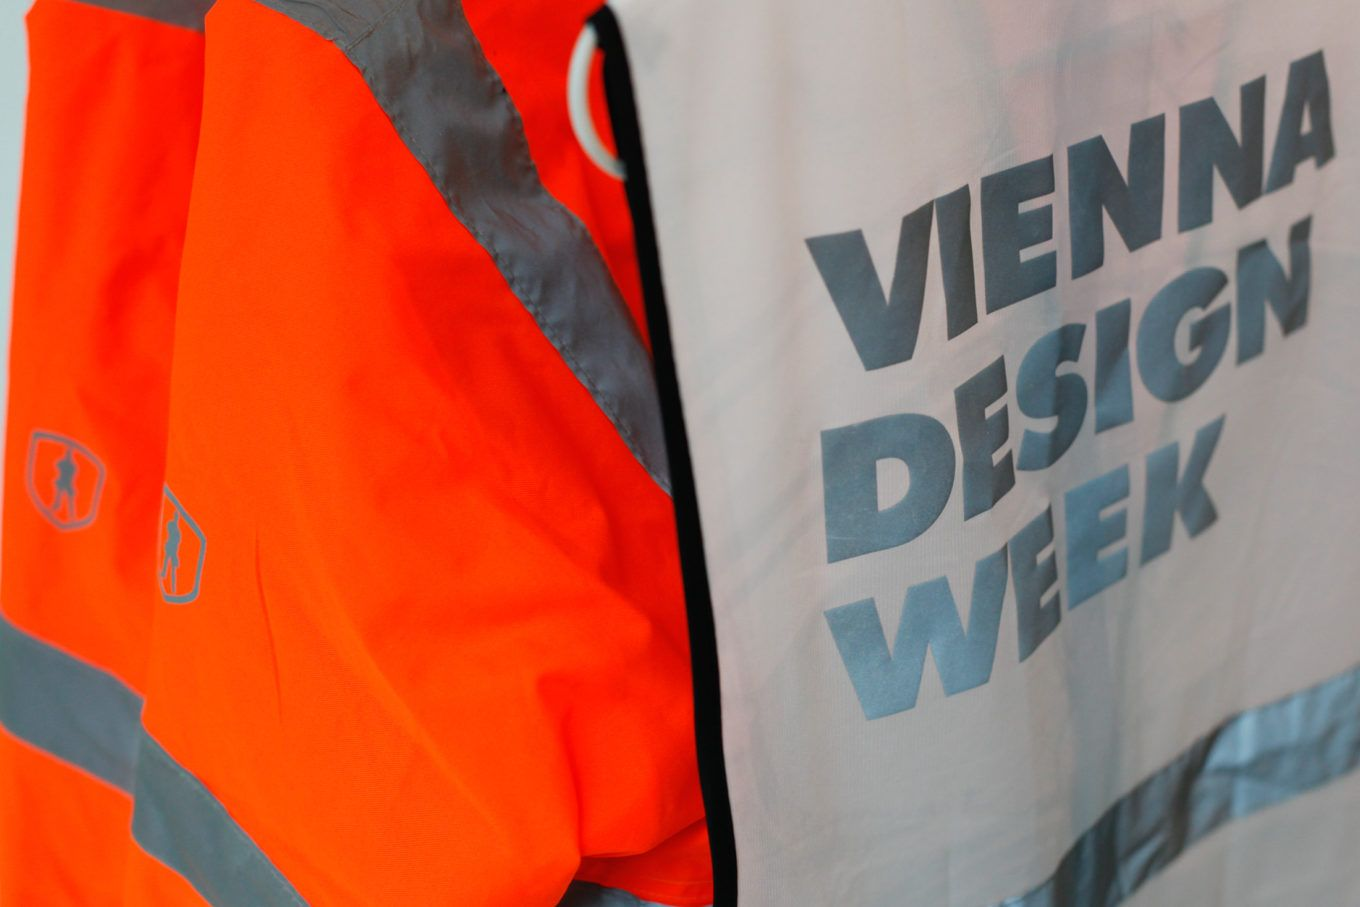 Vienna Design Week Lilli Jacke